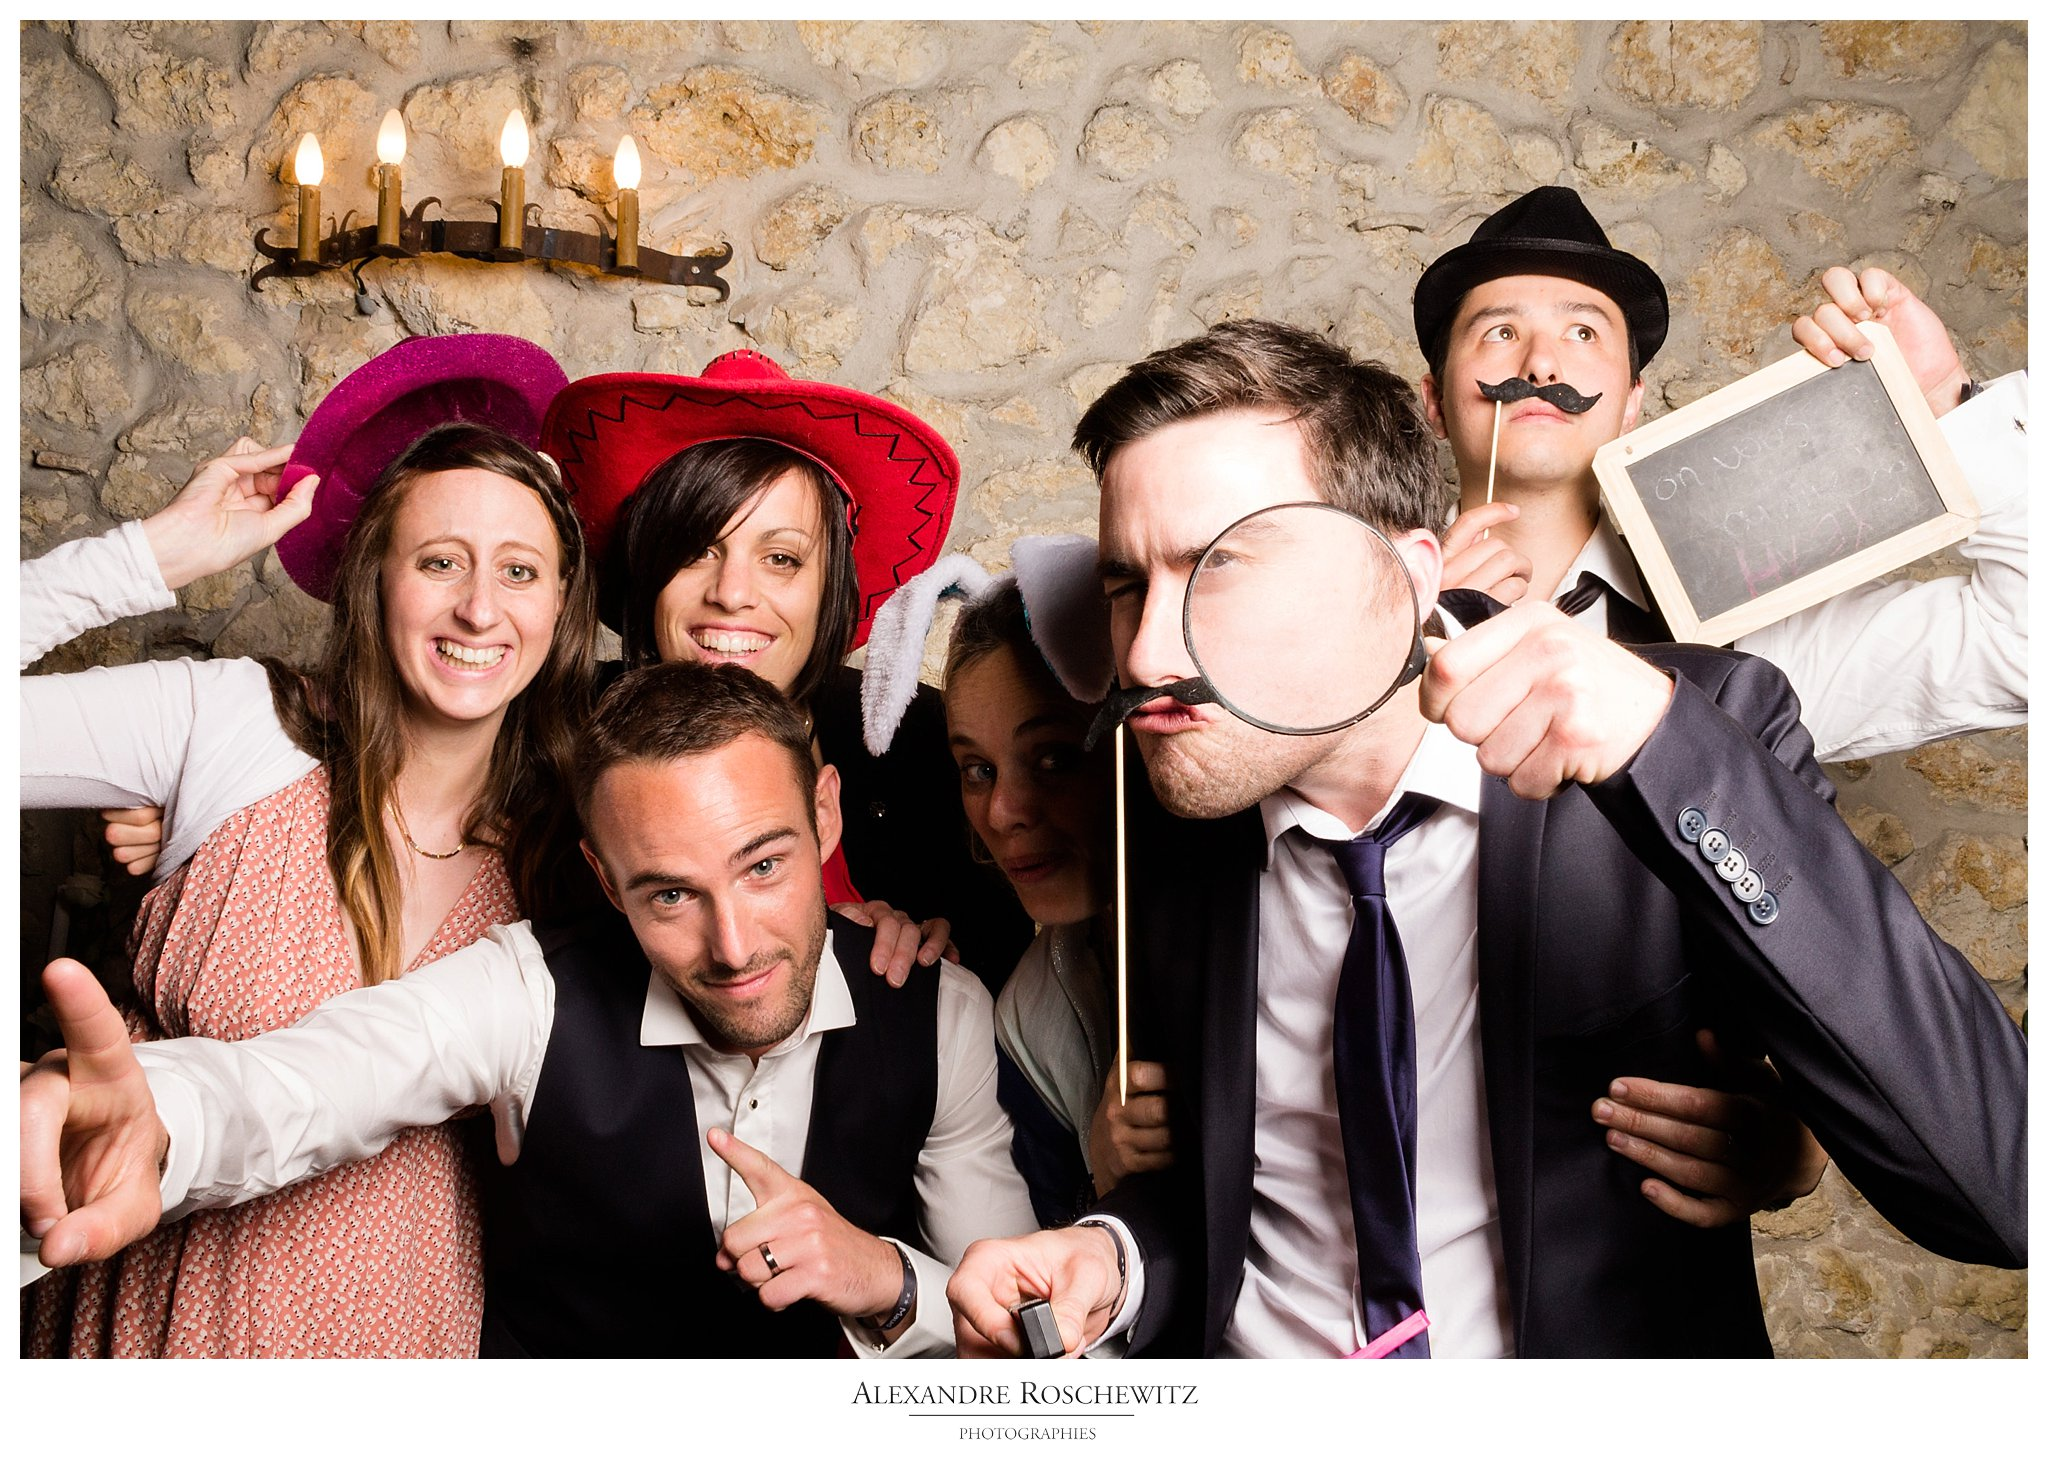 photobooth-mariage-merignac-gironde-maud-anthony-chateau-cujac-alexandre-roschewitz-photographies_1417_2048px